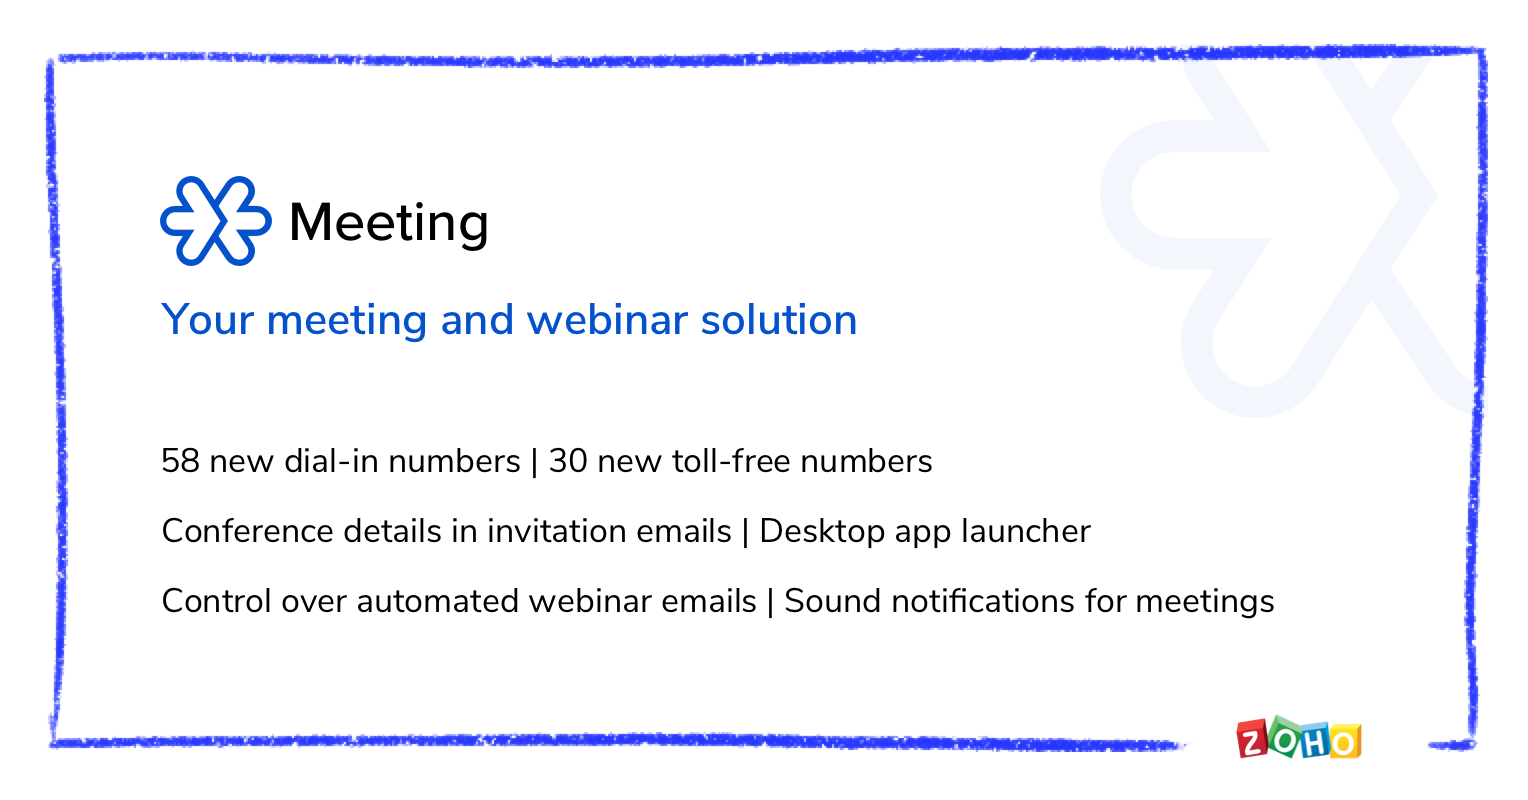 Recent updates in Zoho Meeting